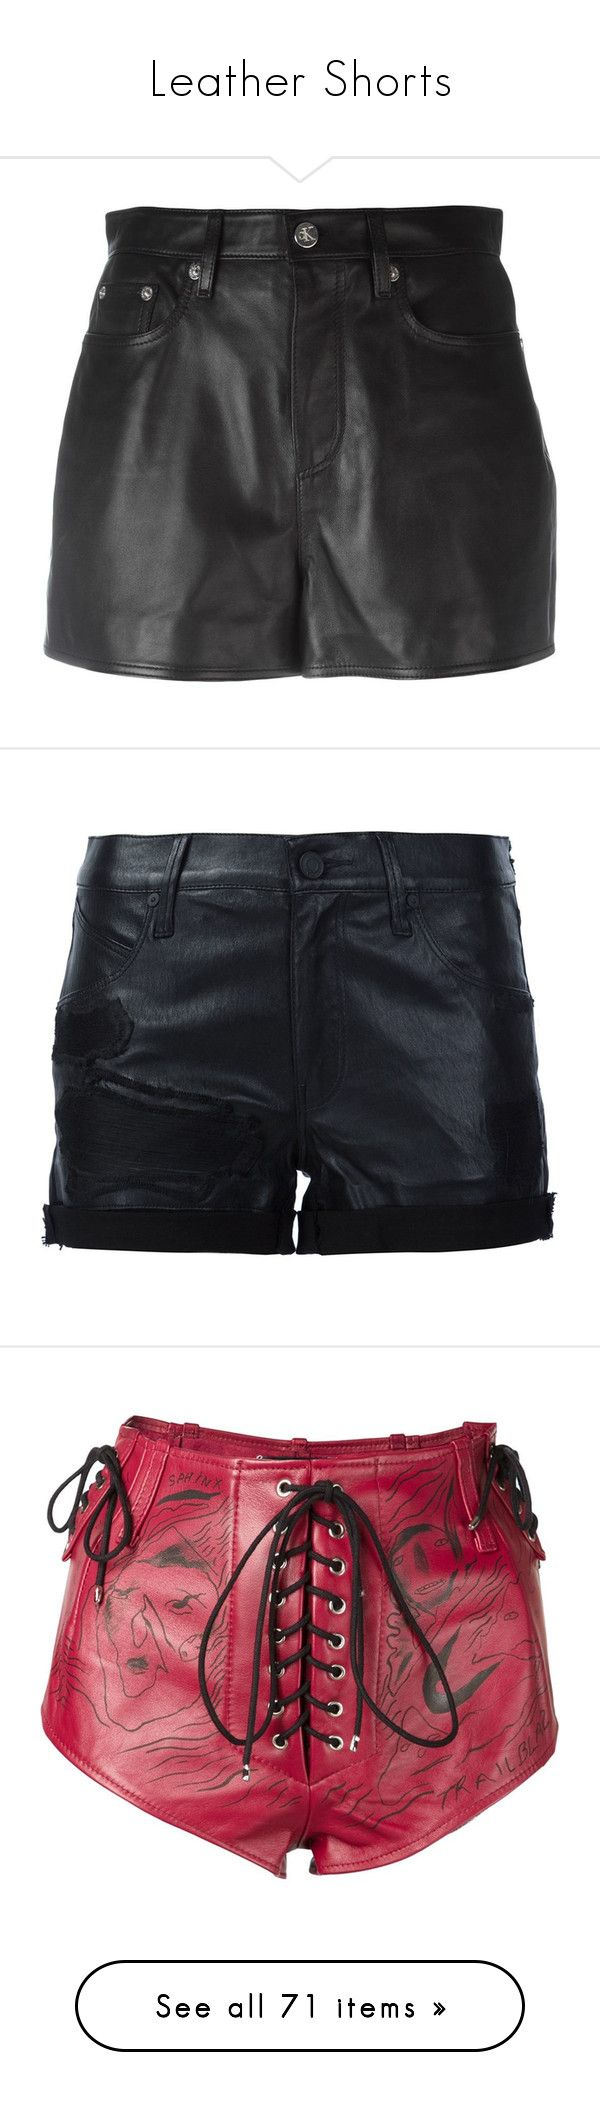 """""""Leather Shorts"""" by thecomedian ❤ liked on Polyvore featuring skirts, mini skirts, black, leather mini skirt, leather skirt, genuine leather skirt, calvin klein jeans, real leather skirt, shorts and leather shorts"""